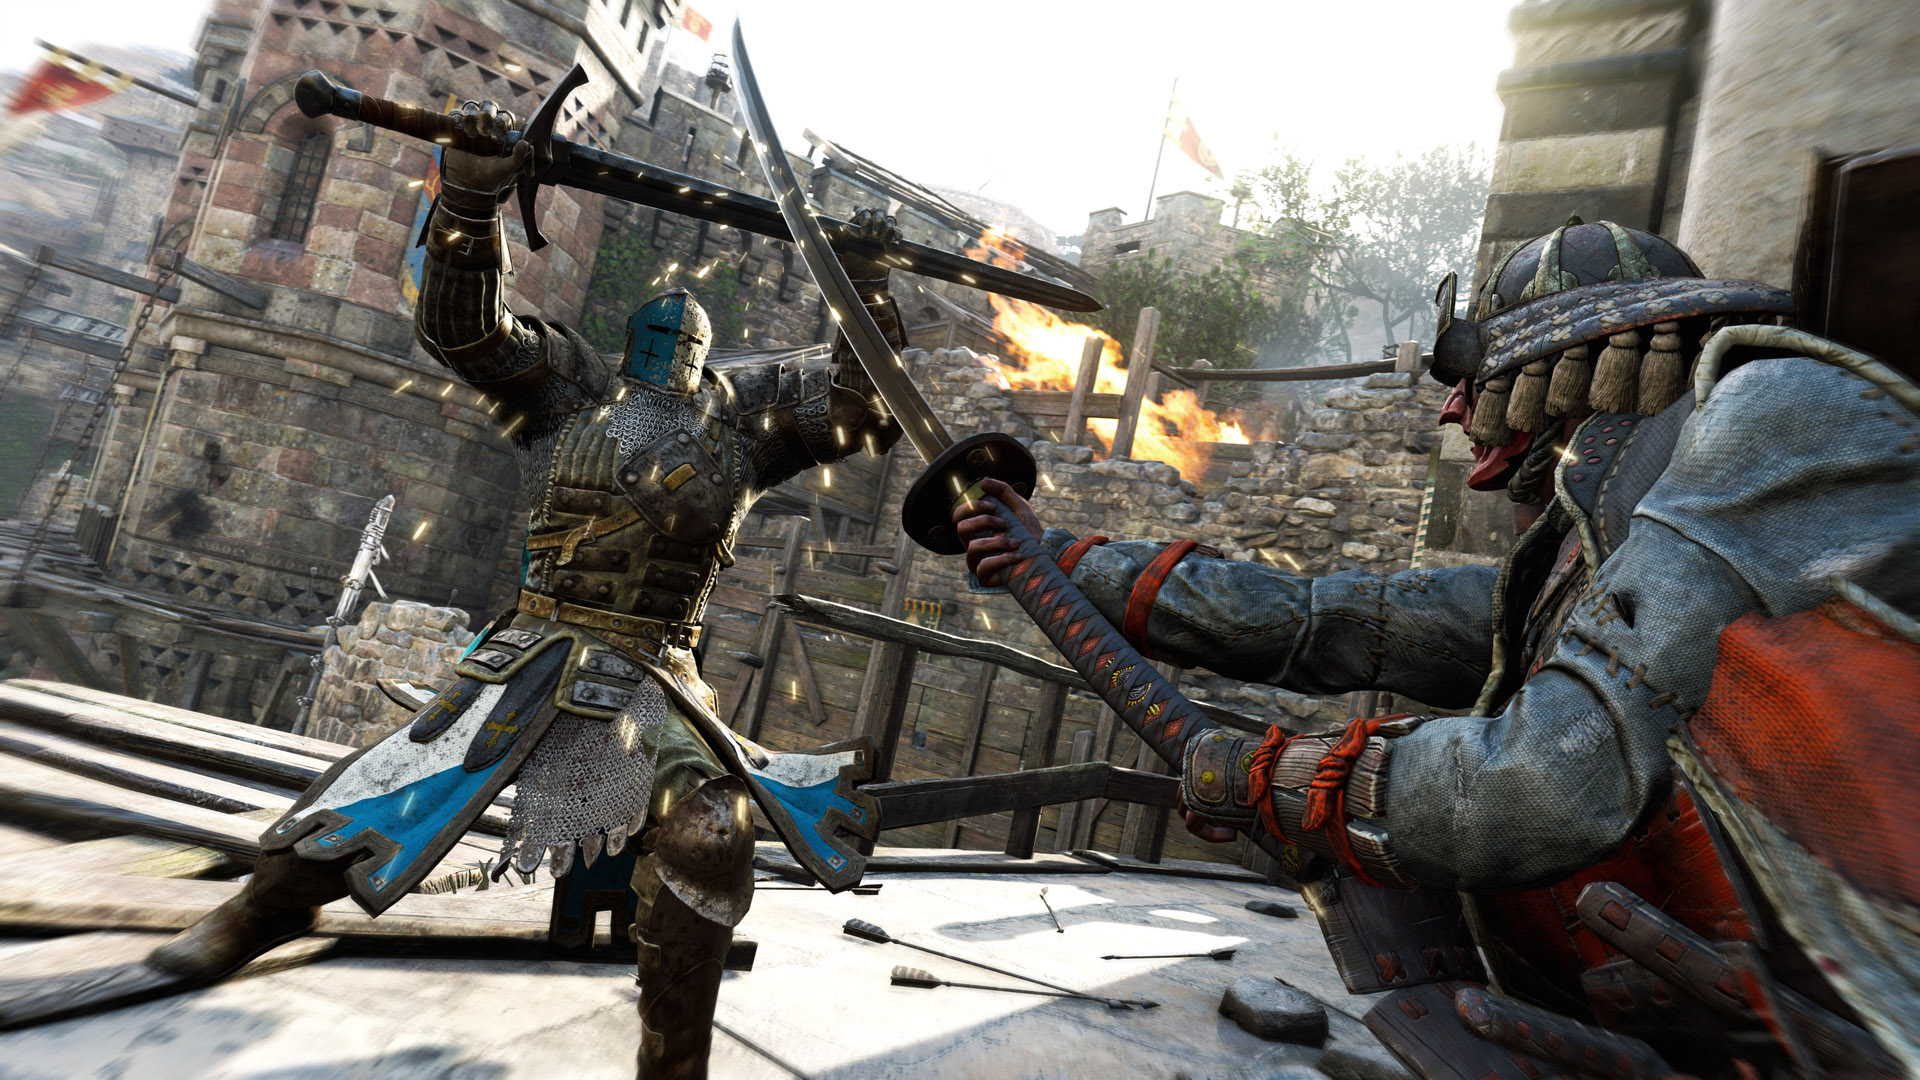 One of the best characters in For Honor is the Warden, thanks to its accessibility and sheer strength. With a lot of health and heavy attacks, the Warden is ideal in 1v1 situations.